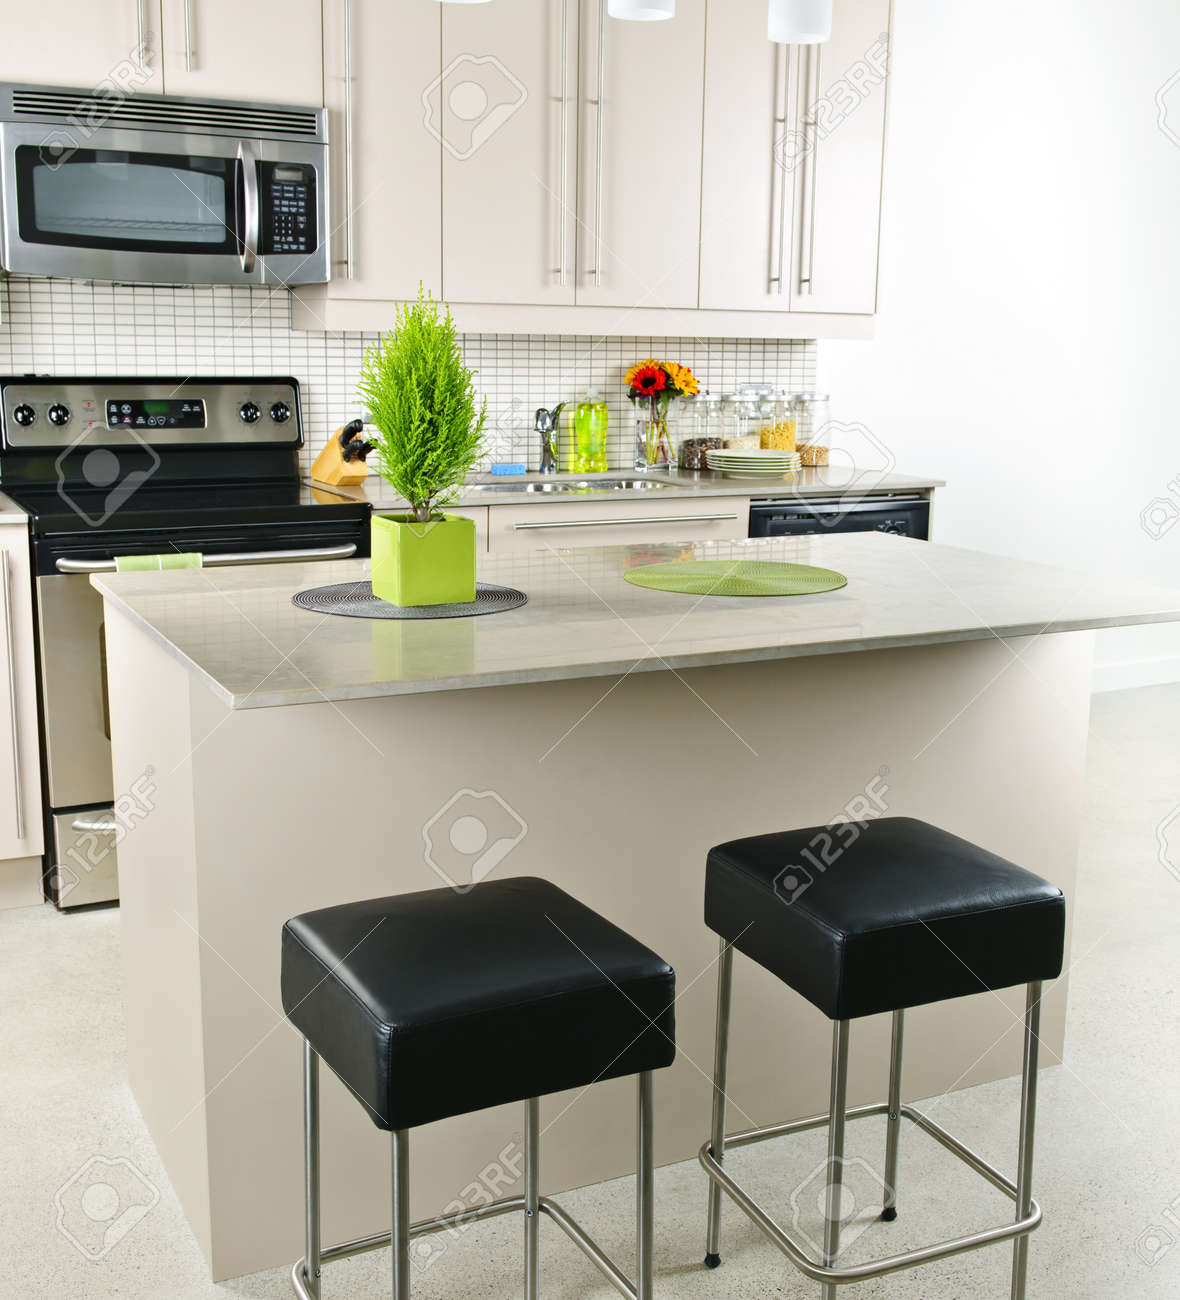 Modern kitchen interior with island and natural stone countertop Stock Photo - 8163221